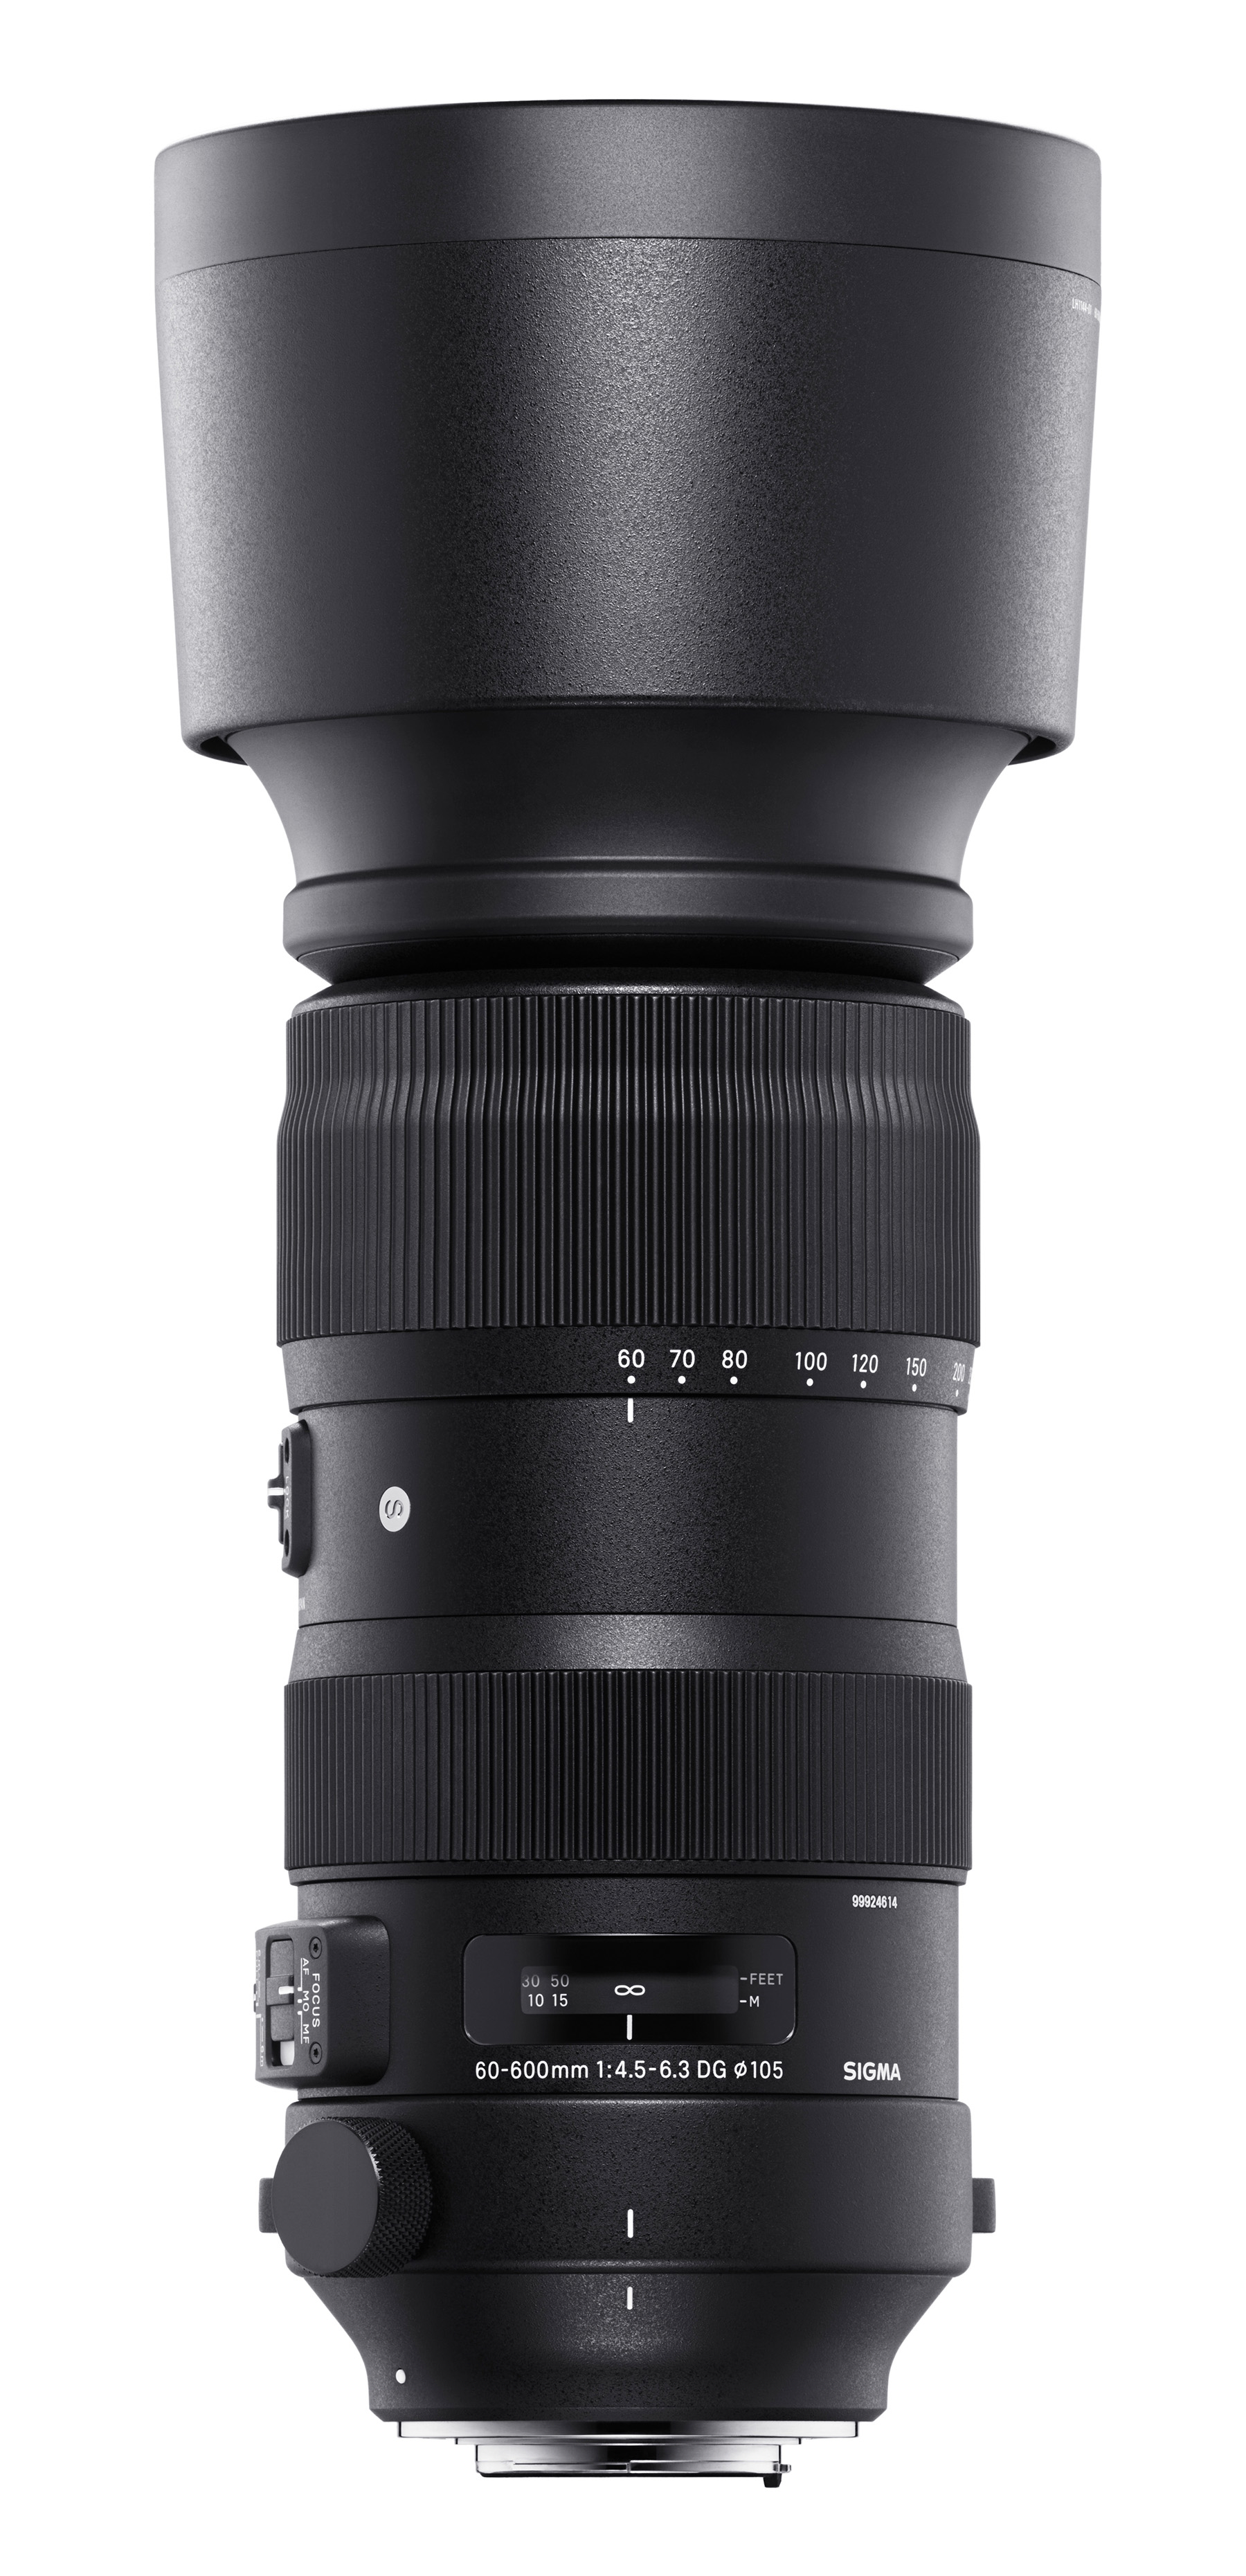 Produktabbildung 60-600mm F4,5-6,3 DG OS HSM | Sports